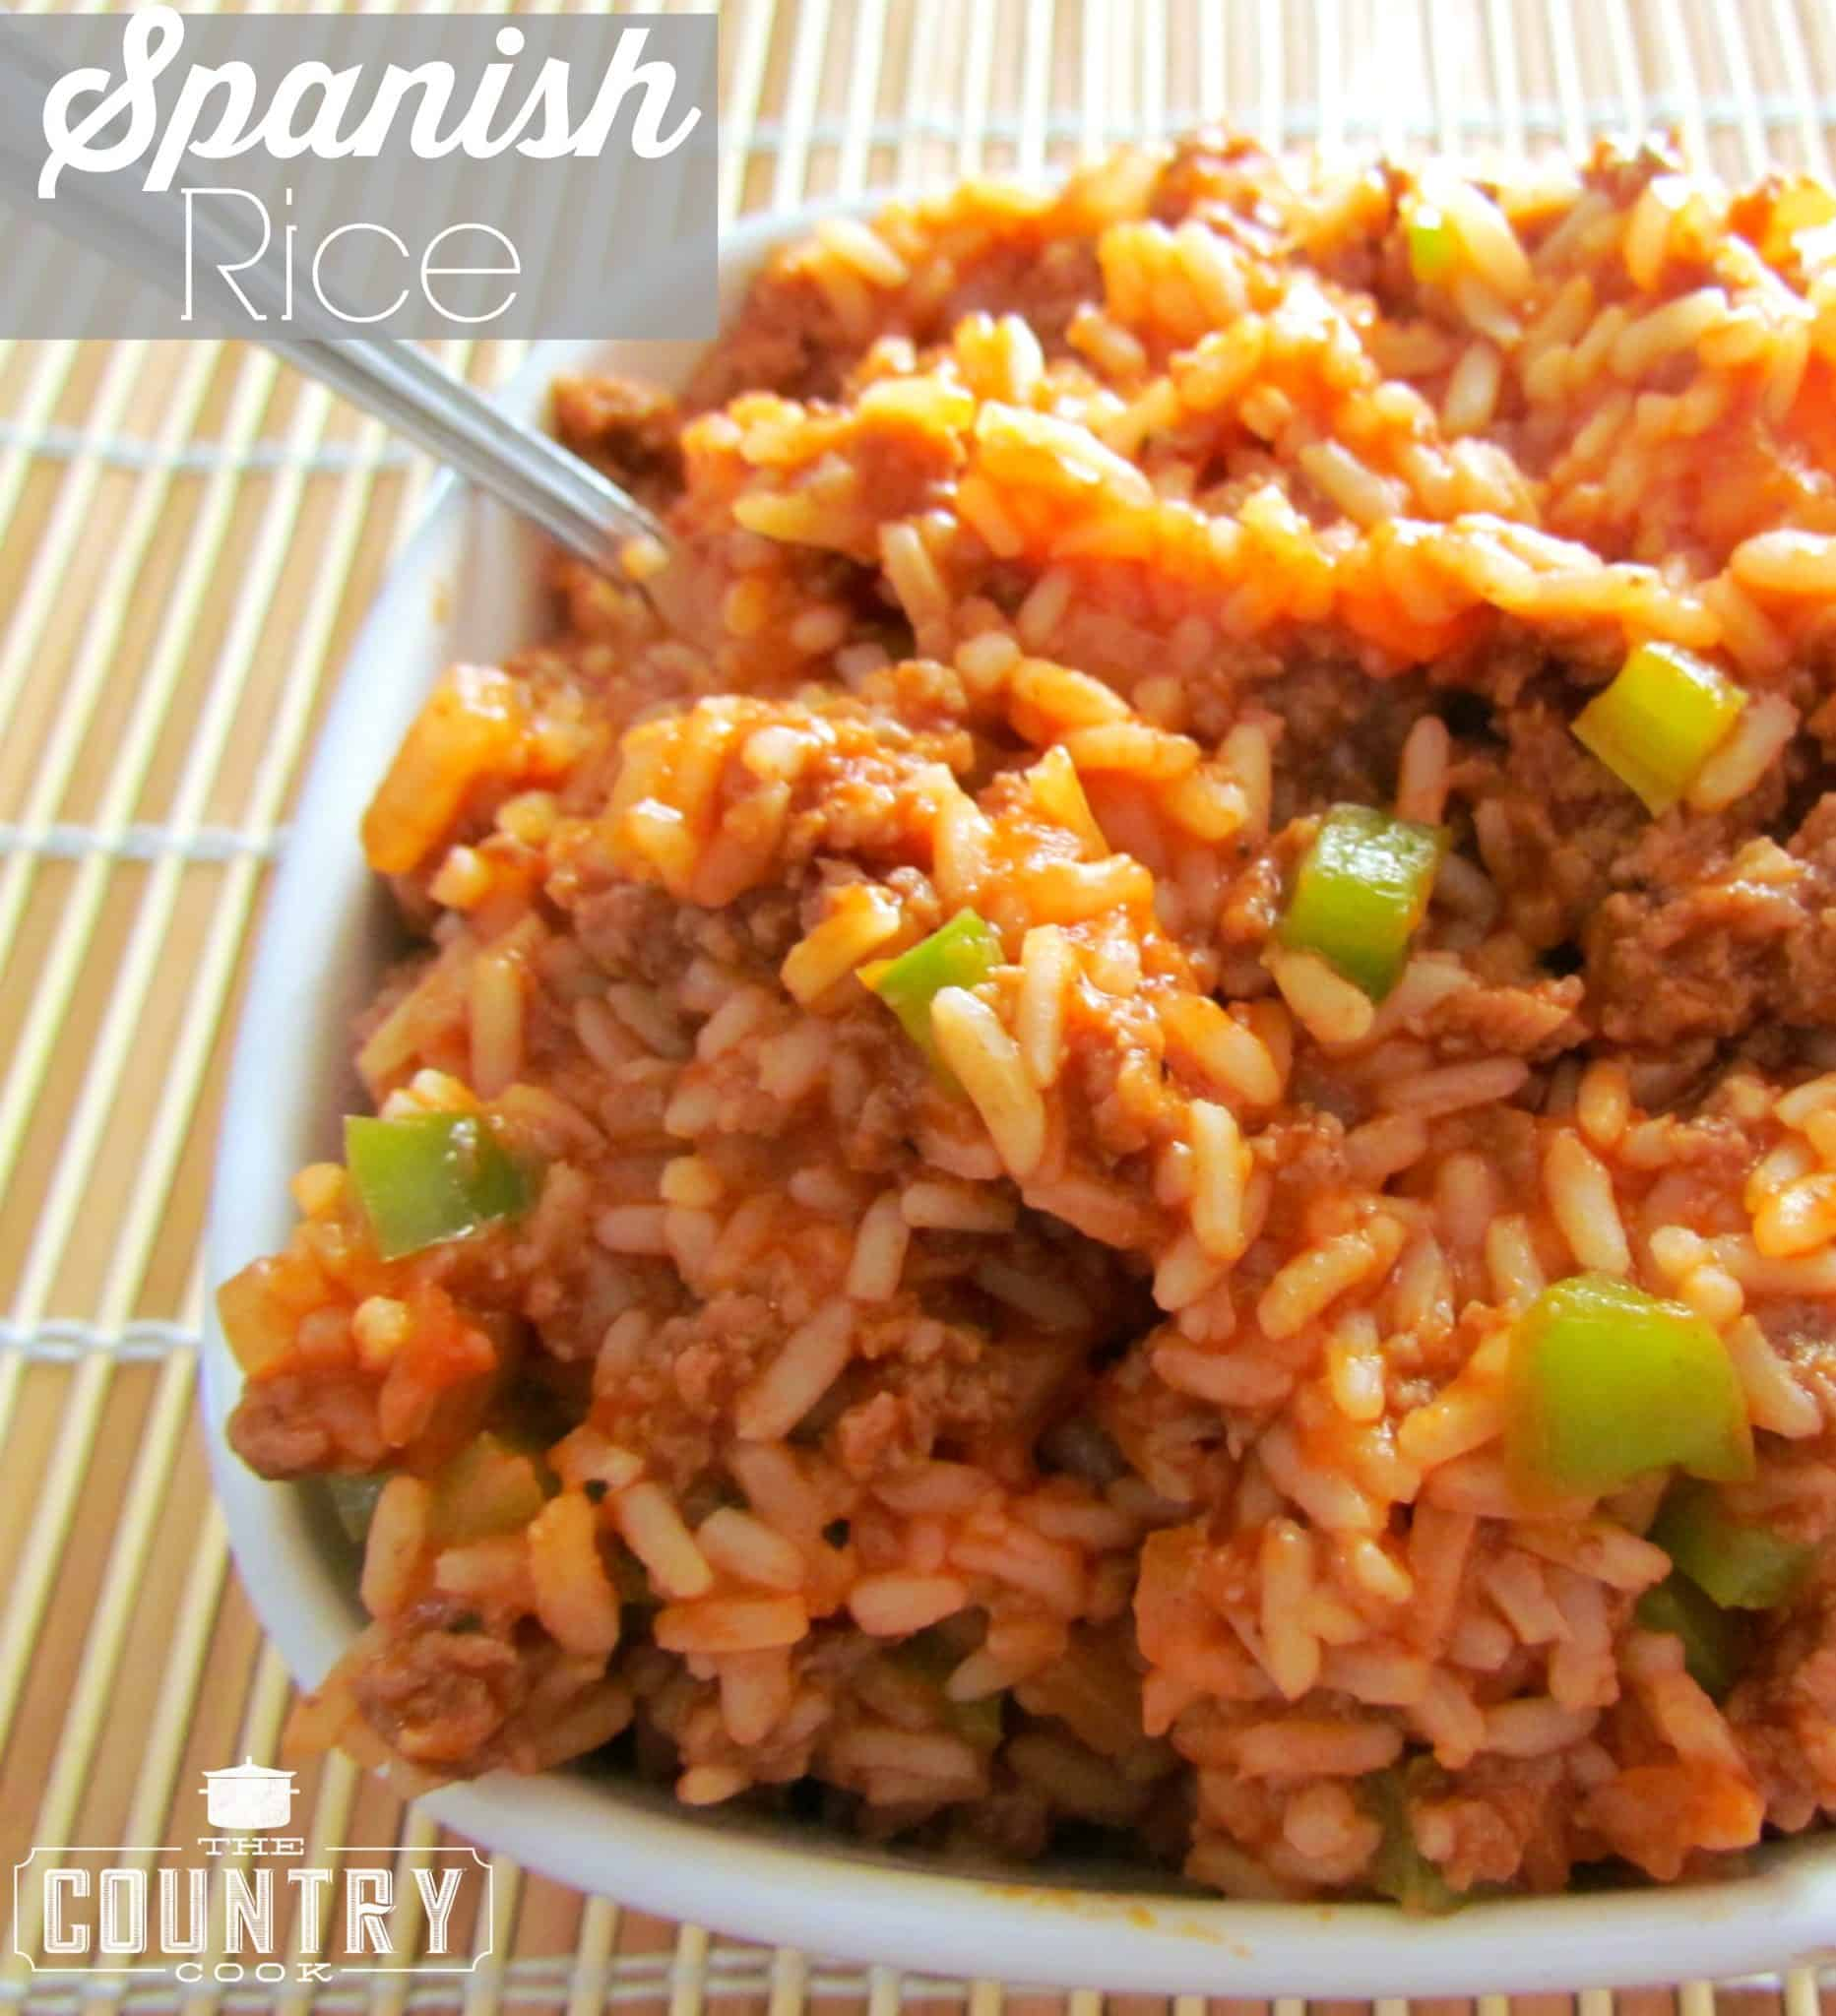 Spanish style rice the country cook spanish rice ccuart Choice Image